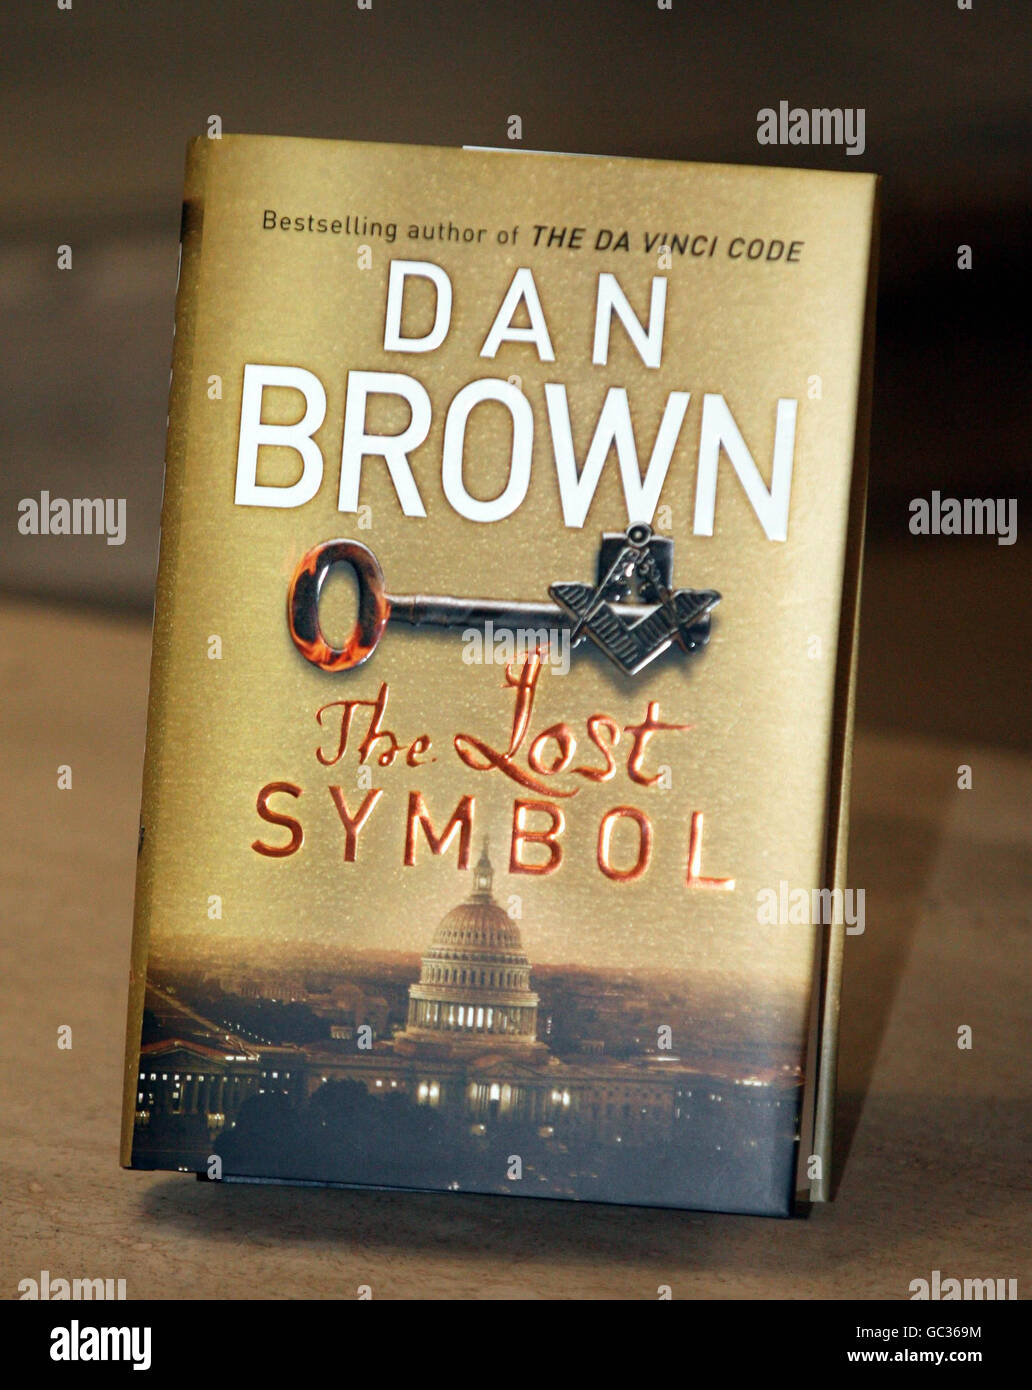 Dan Brown 'The Lost Symbol' photocall - London - Stock Image